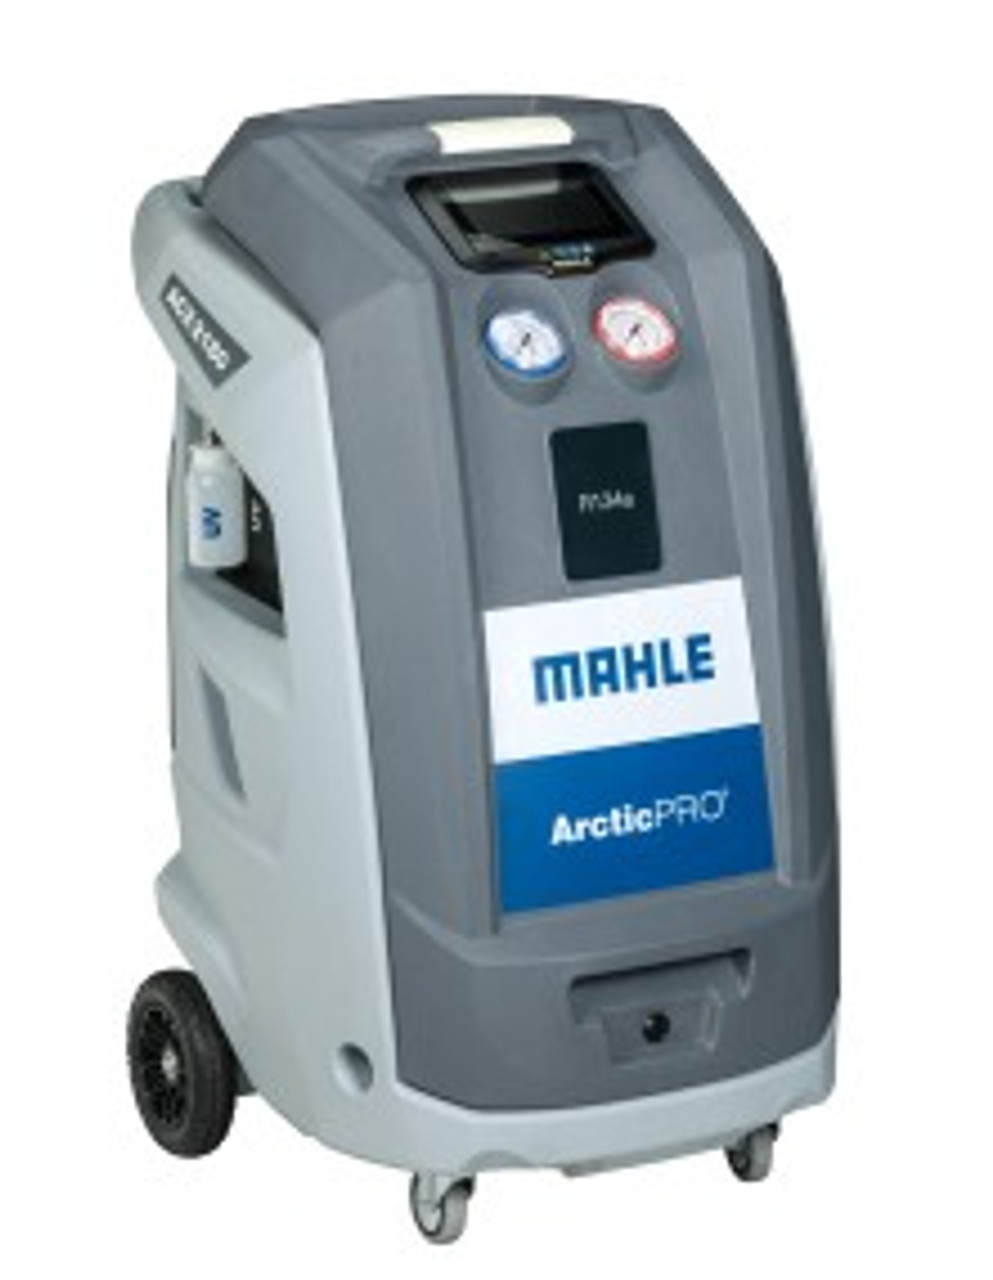 Mahle ArticPRO ACX2180 R134a Refrigerant Handling System: 460 80447 00